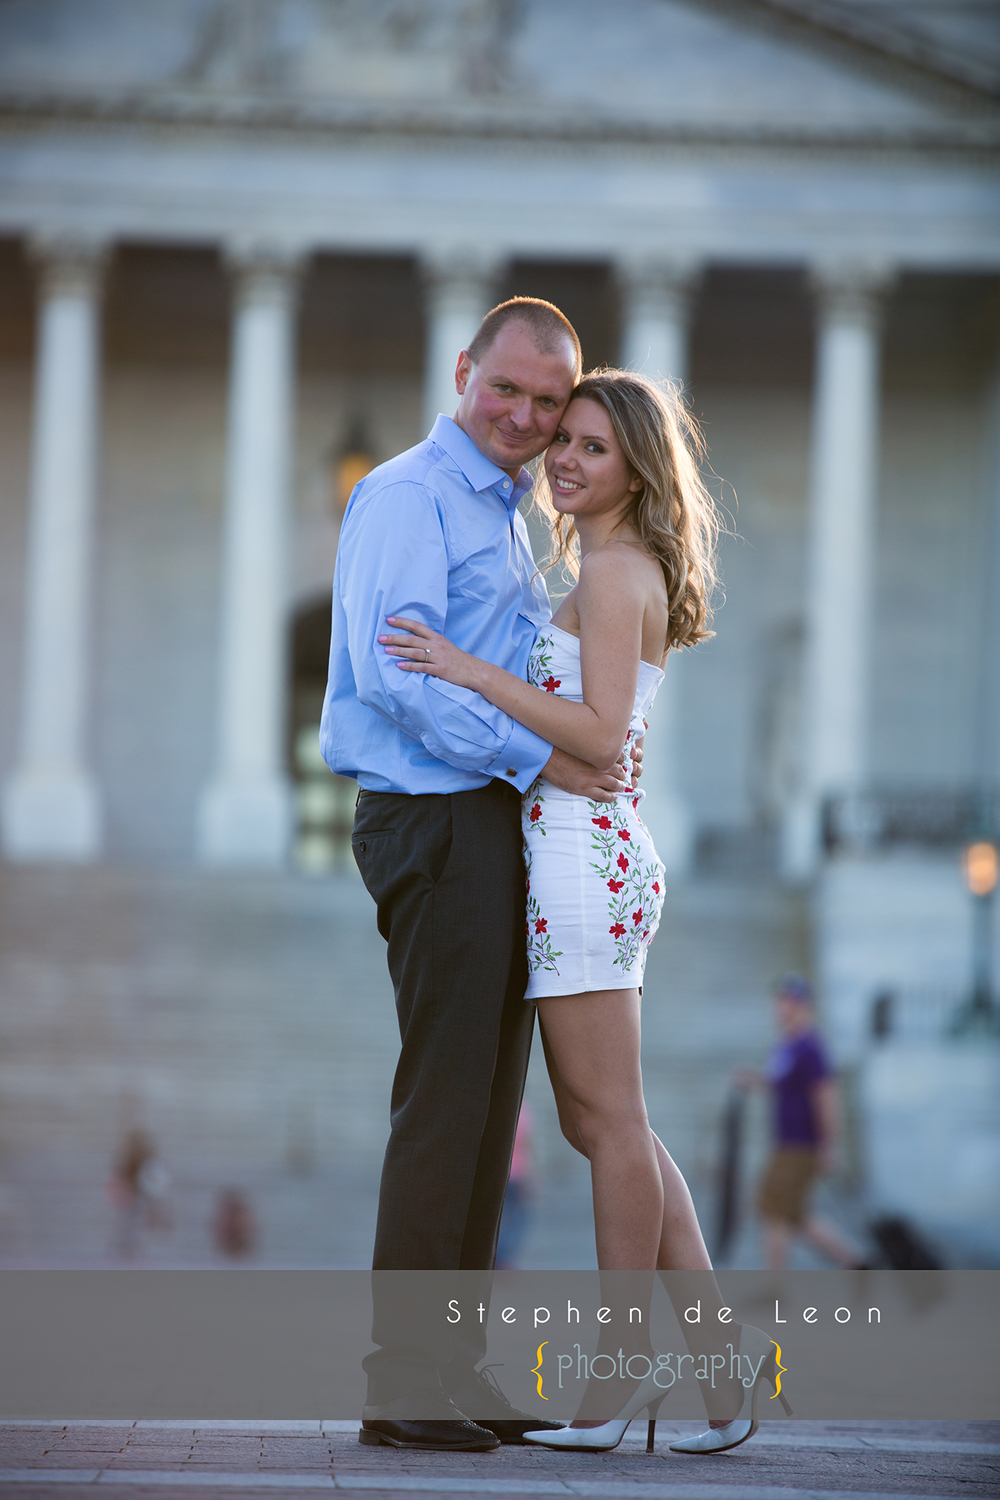 Stephen_de_Leon_Capitol_Engagement_Photography10.jpg